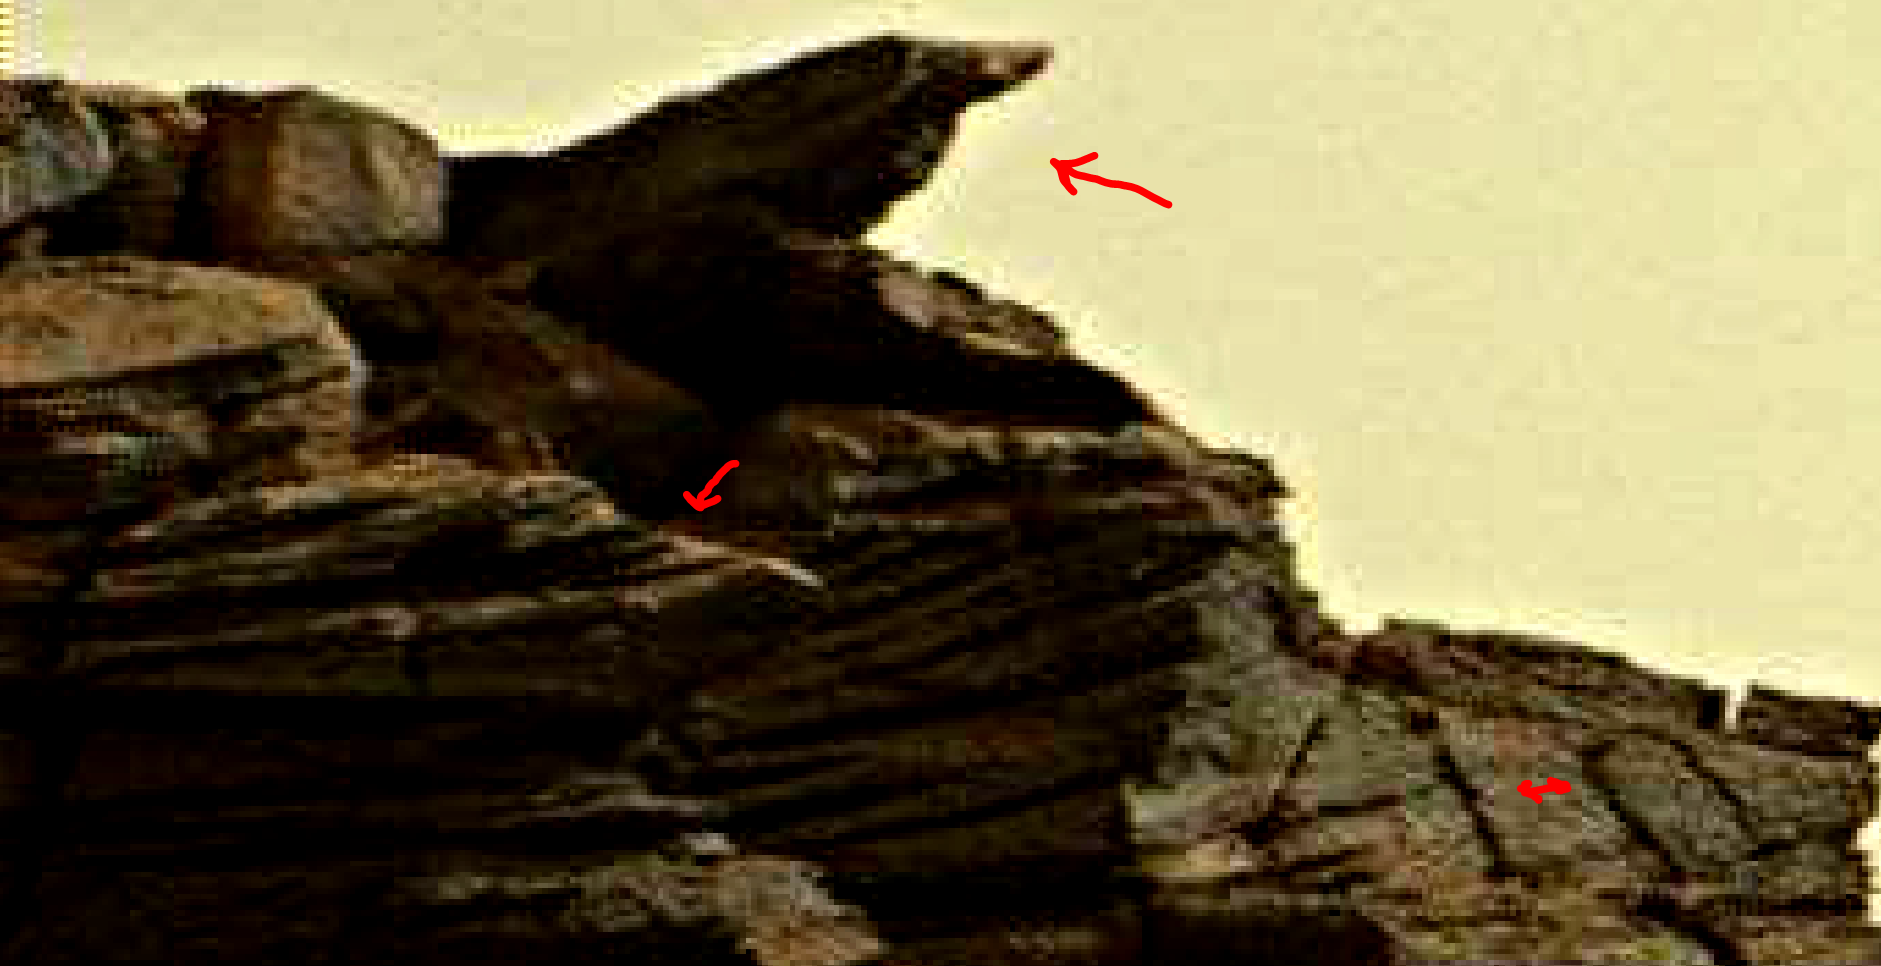 mars sol 1419 anomaly artifacts 1aa was life on mars